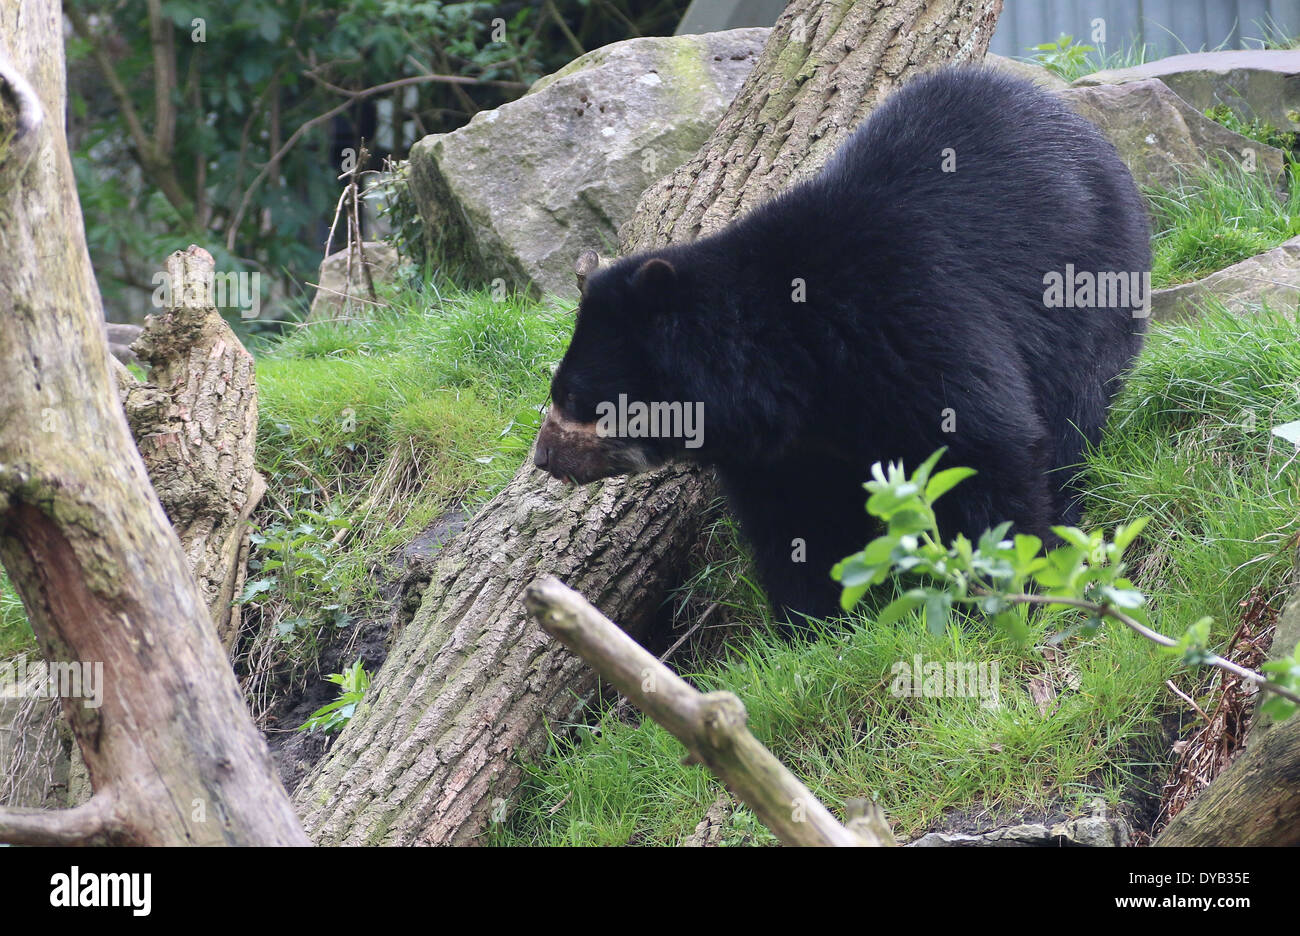 Spectacled or  Andean bear (Tremarctos ornatus) at Emmen Zoo, The Netherlands Stock Photo